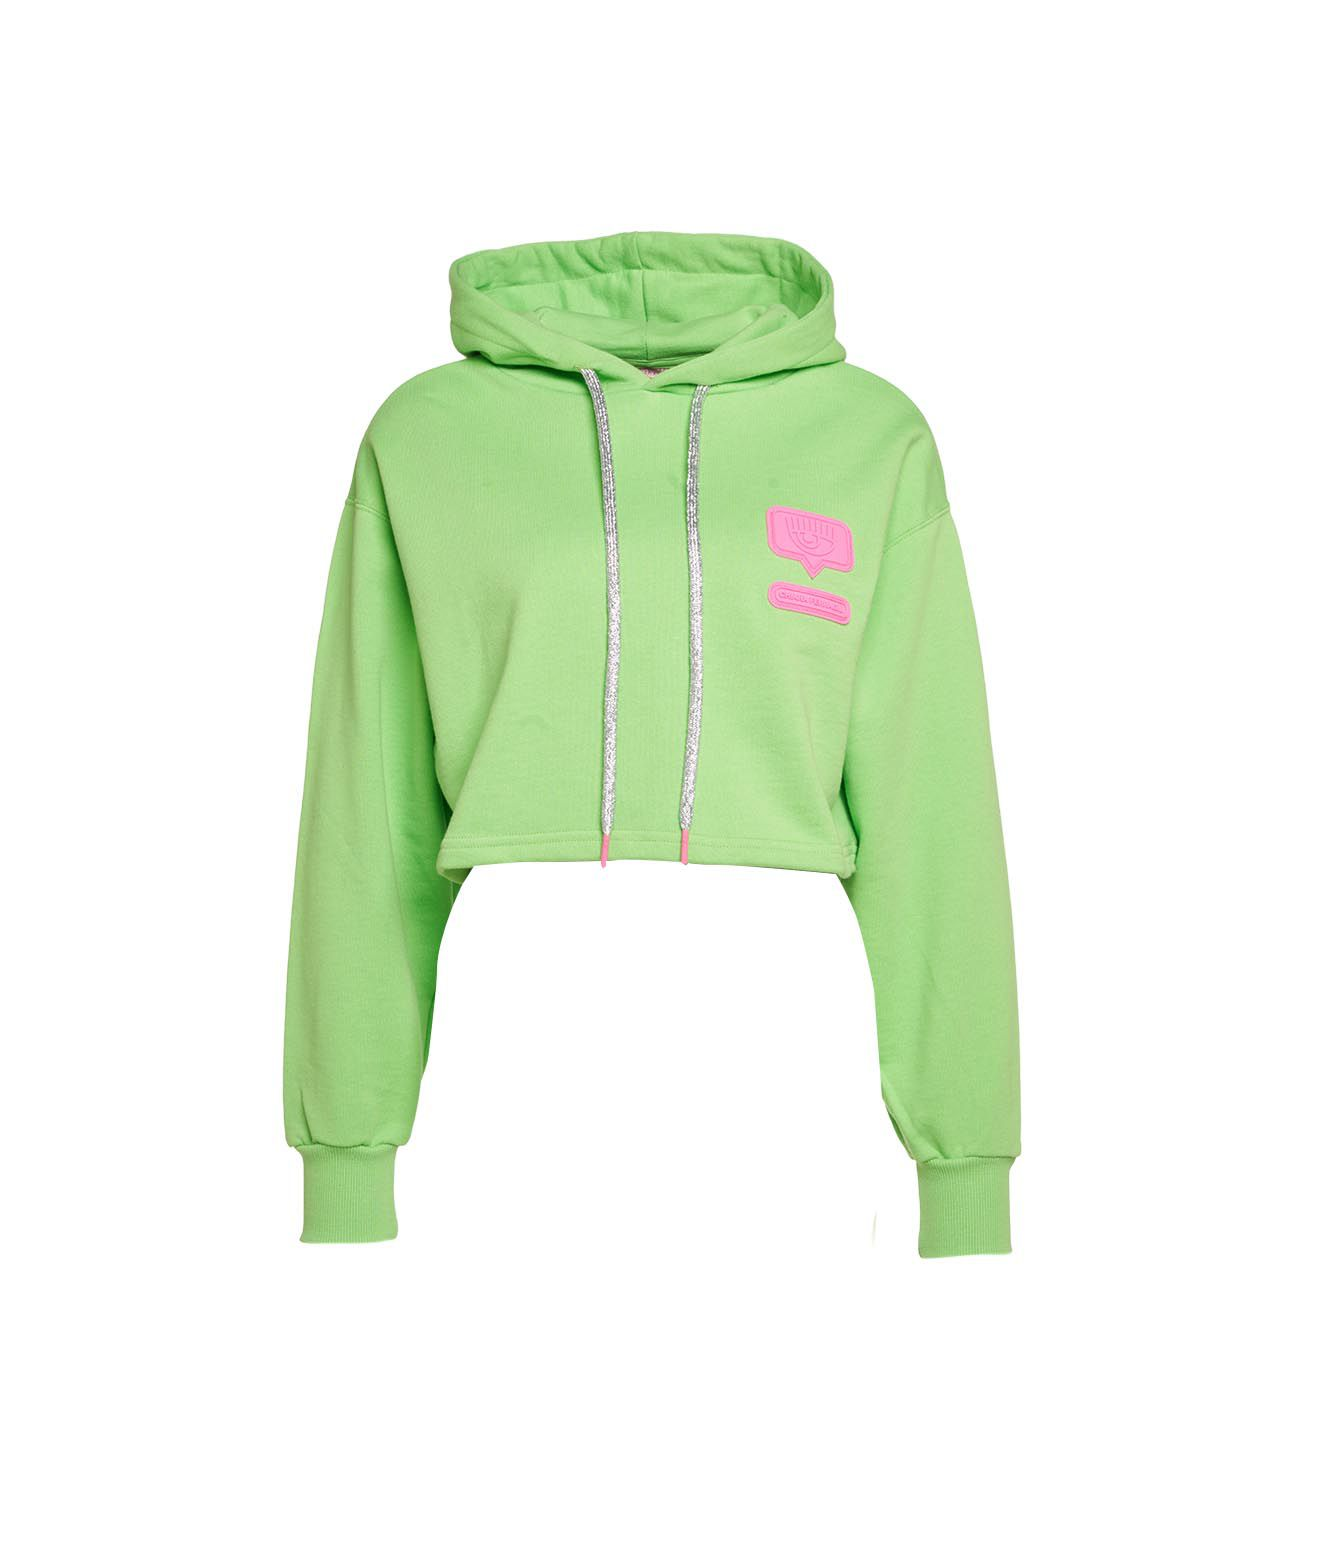 Chiara Ferragni Cottons CROPPED HOODIE WITH LOGOPATCH